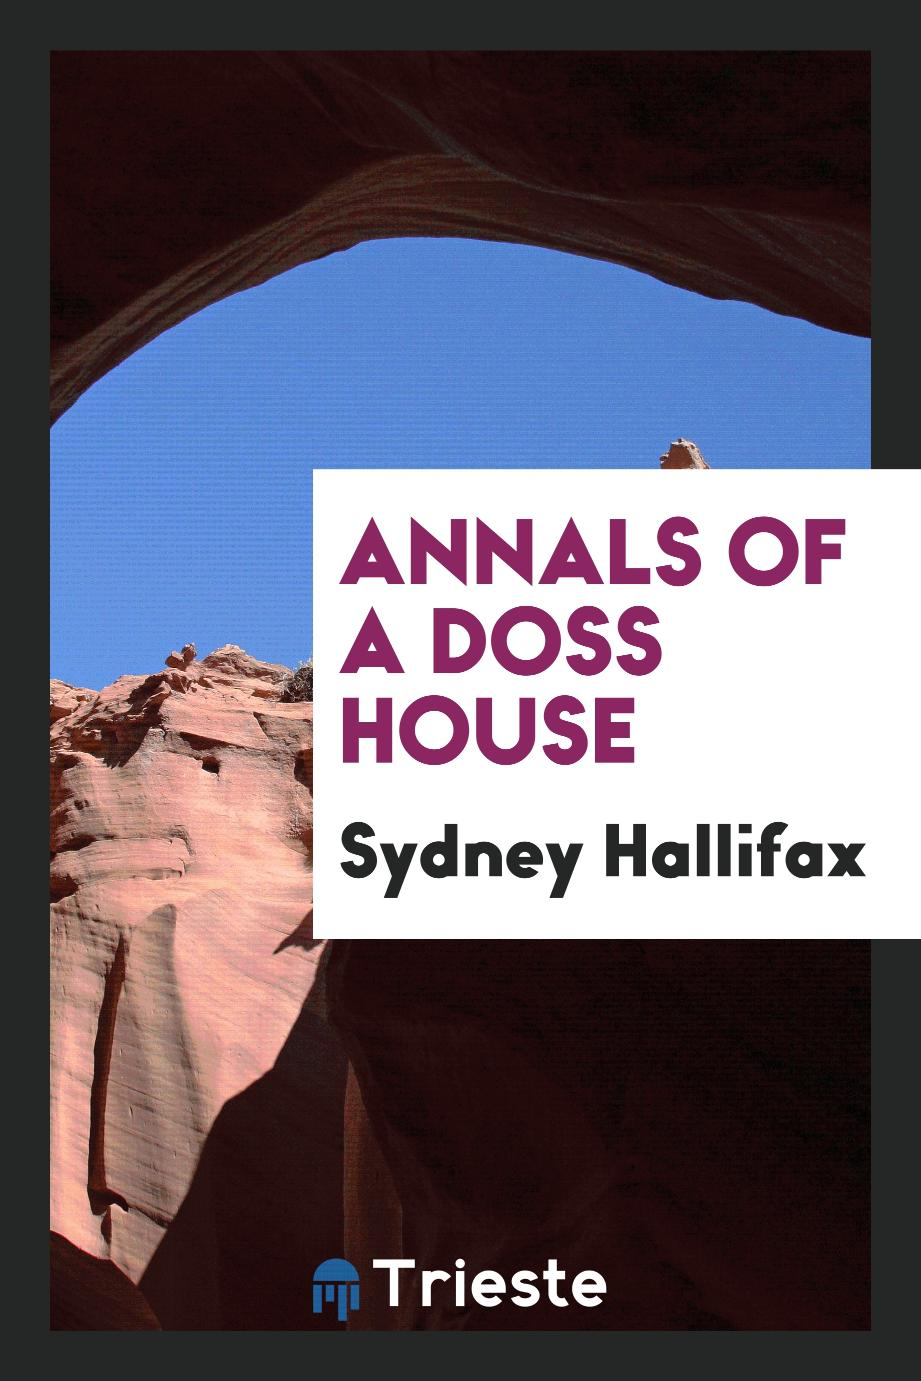 Sydney Hallifax - Annals of a Doss House